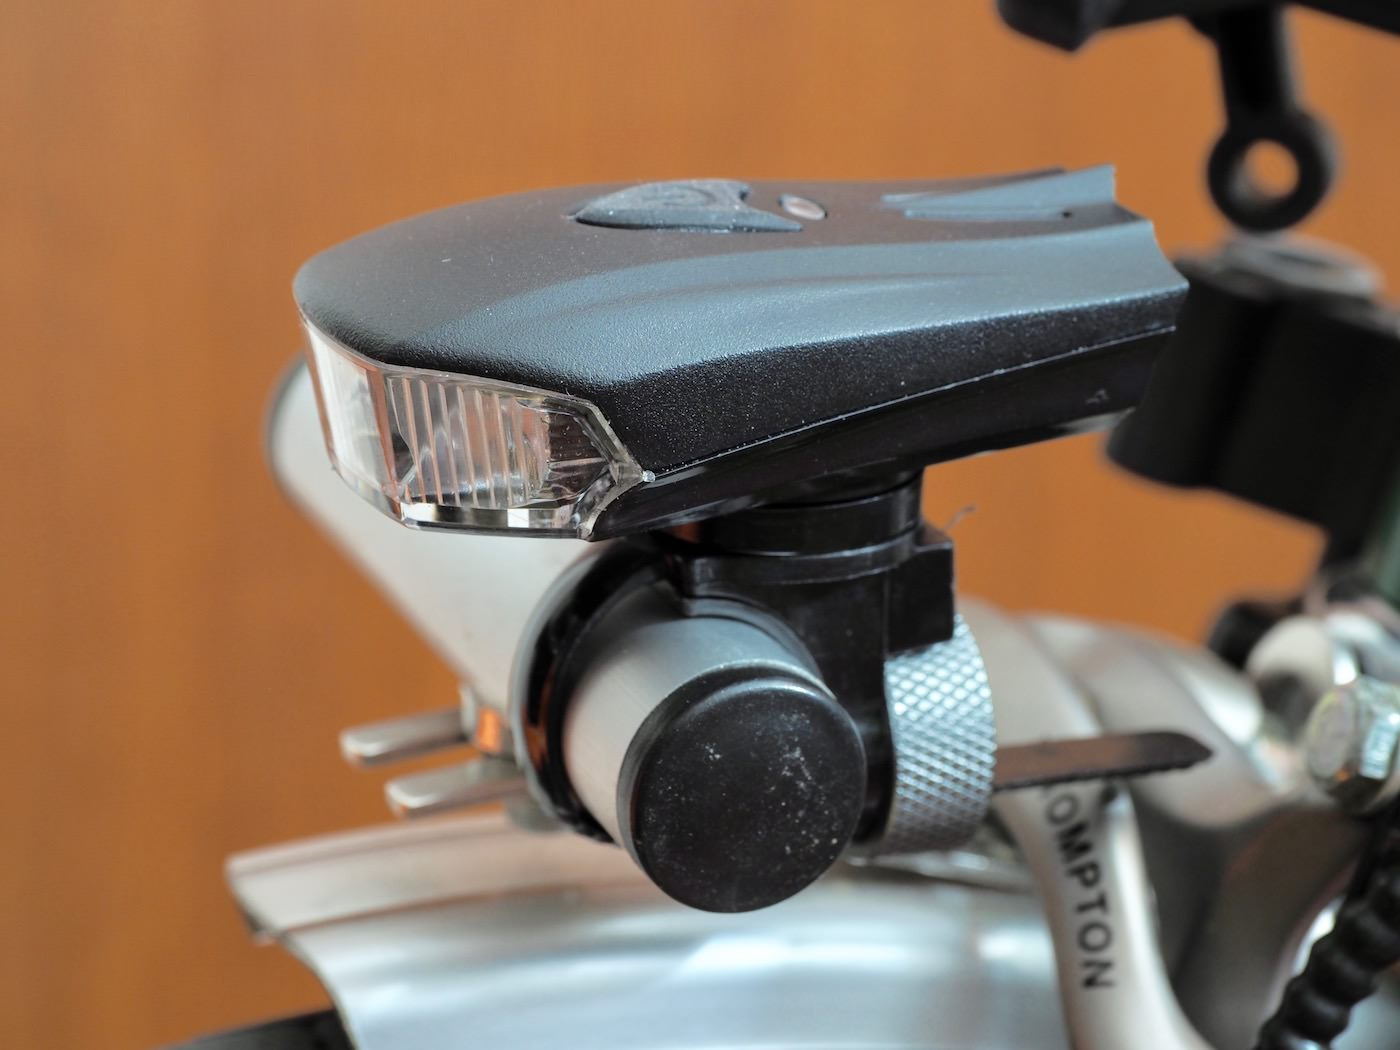 Cree xpg 2 cheap chinese led light with wide angle lens for bicycle 00028